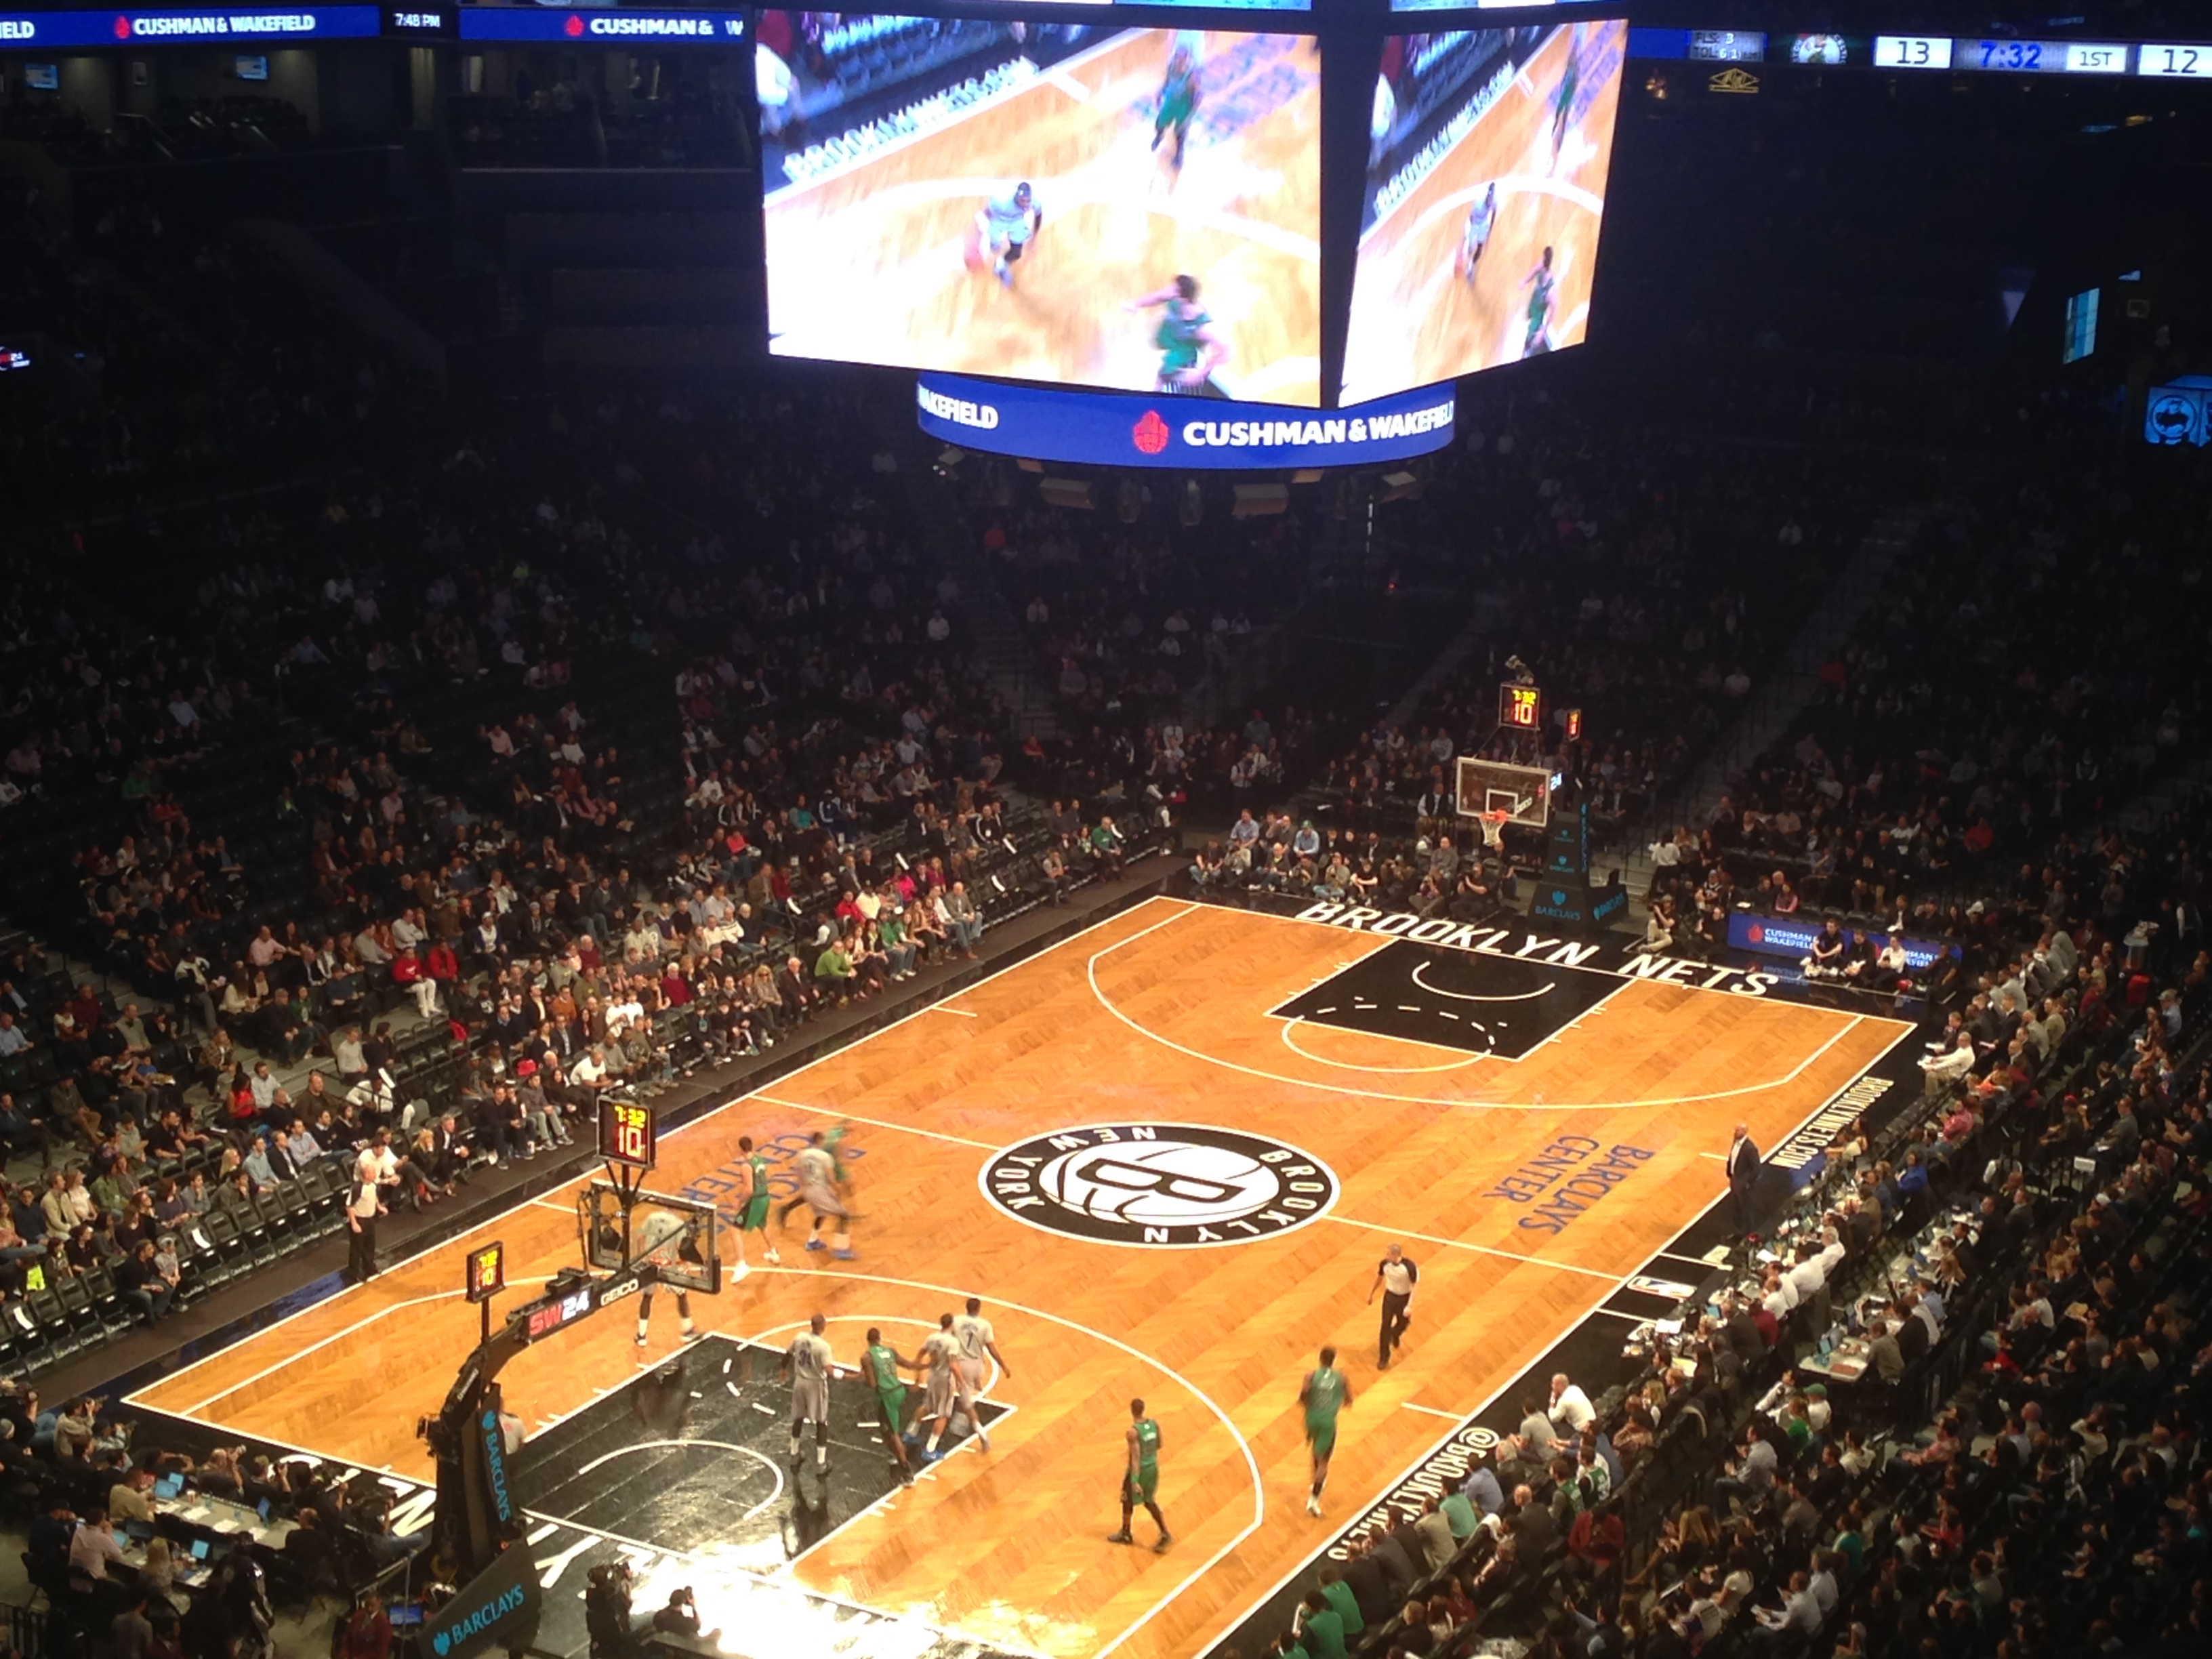 Barclays Center in Brooklyn